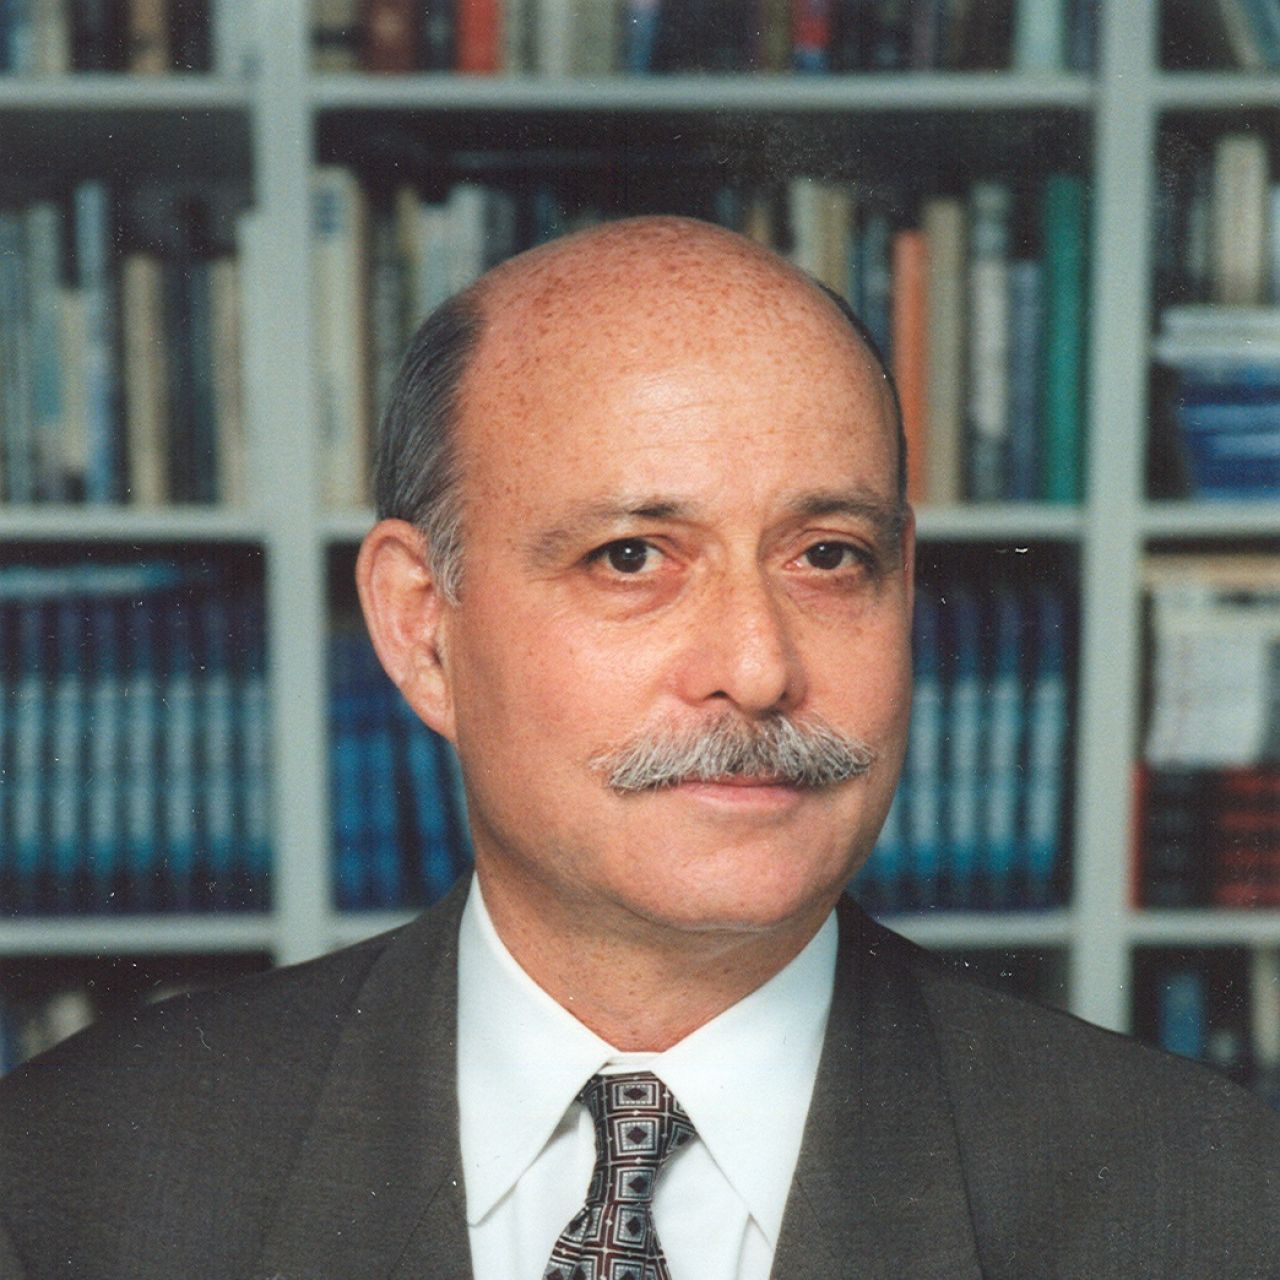 a review of jeremy rifkins book beyond beef